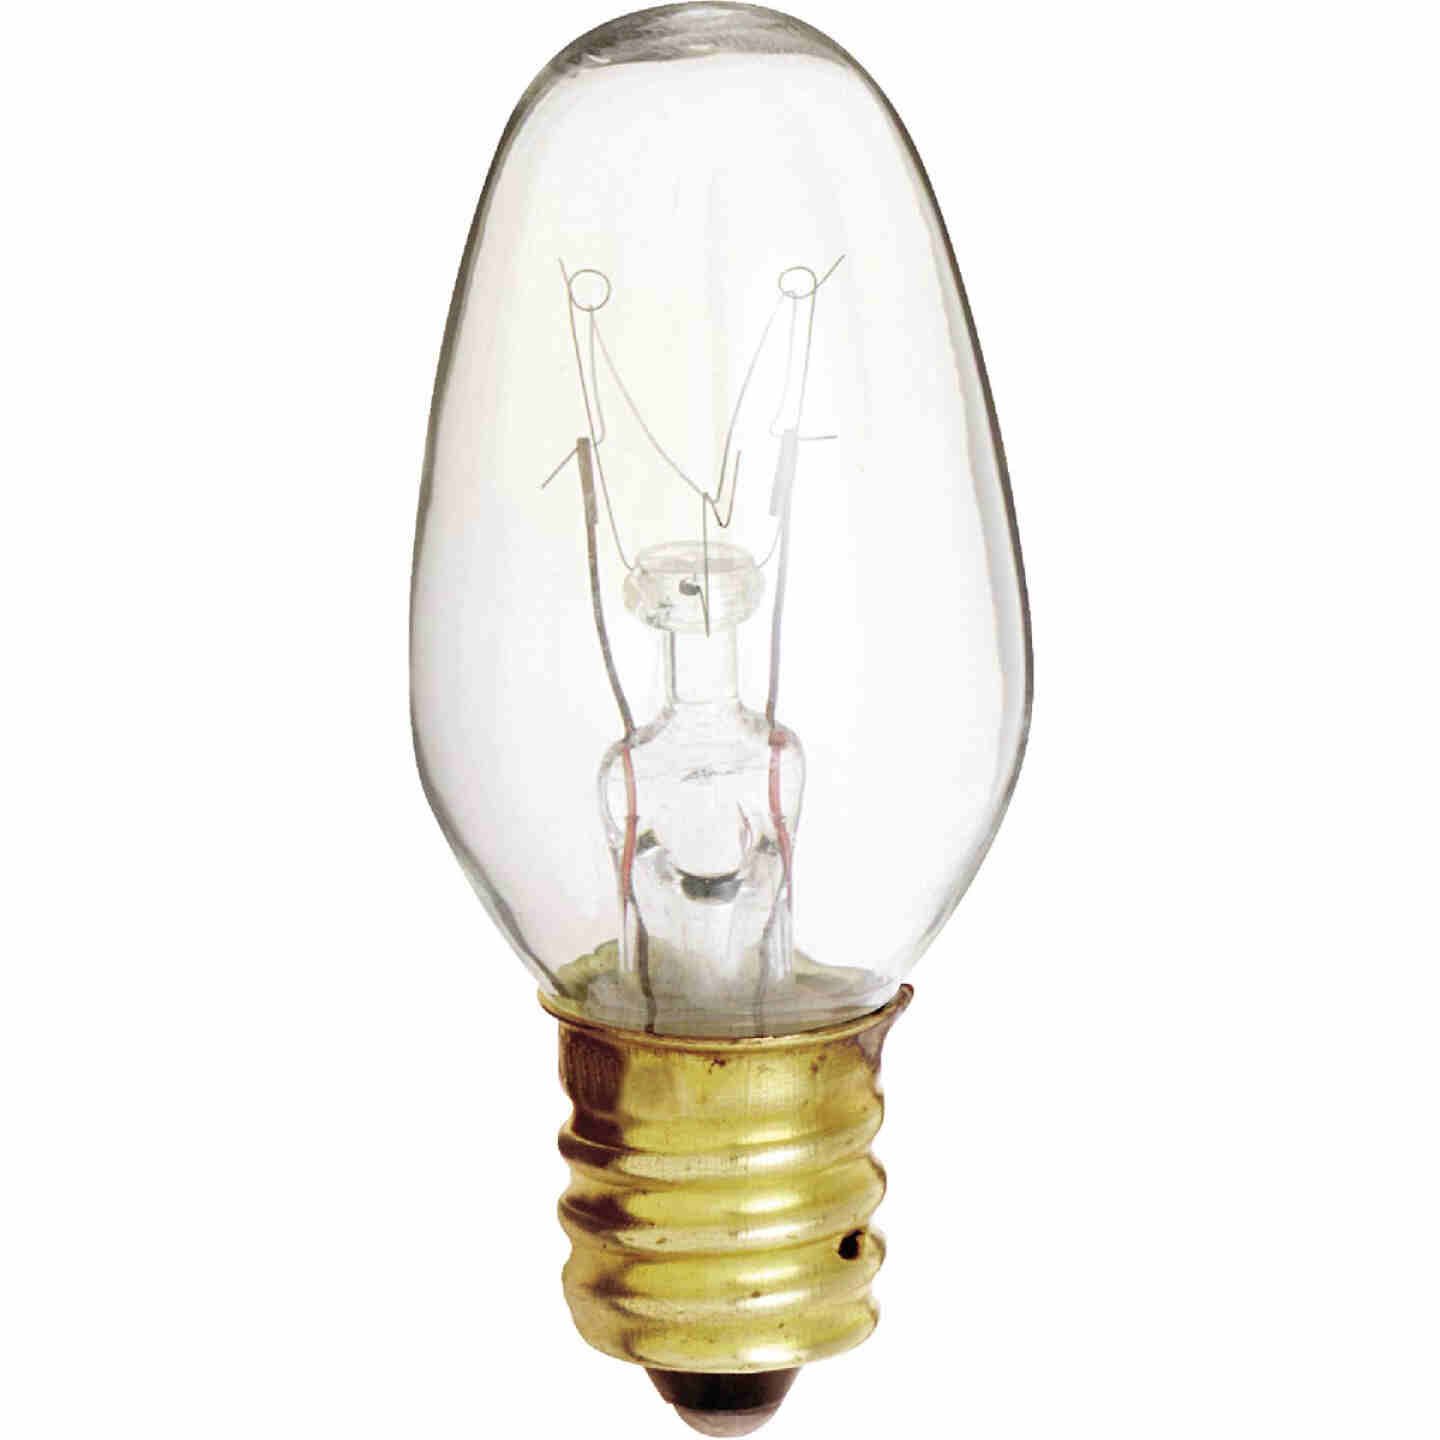 Satco 4W Clear Candelabra Base C7 Incandescent Night Light Bulb (4-Pack) Image 1